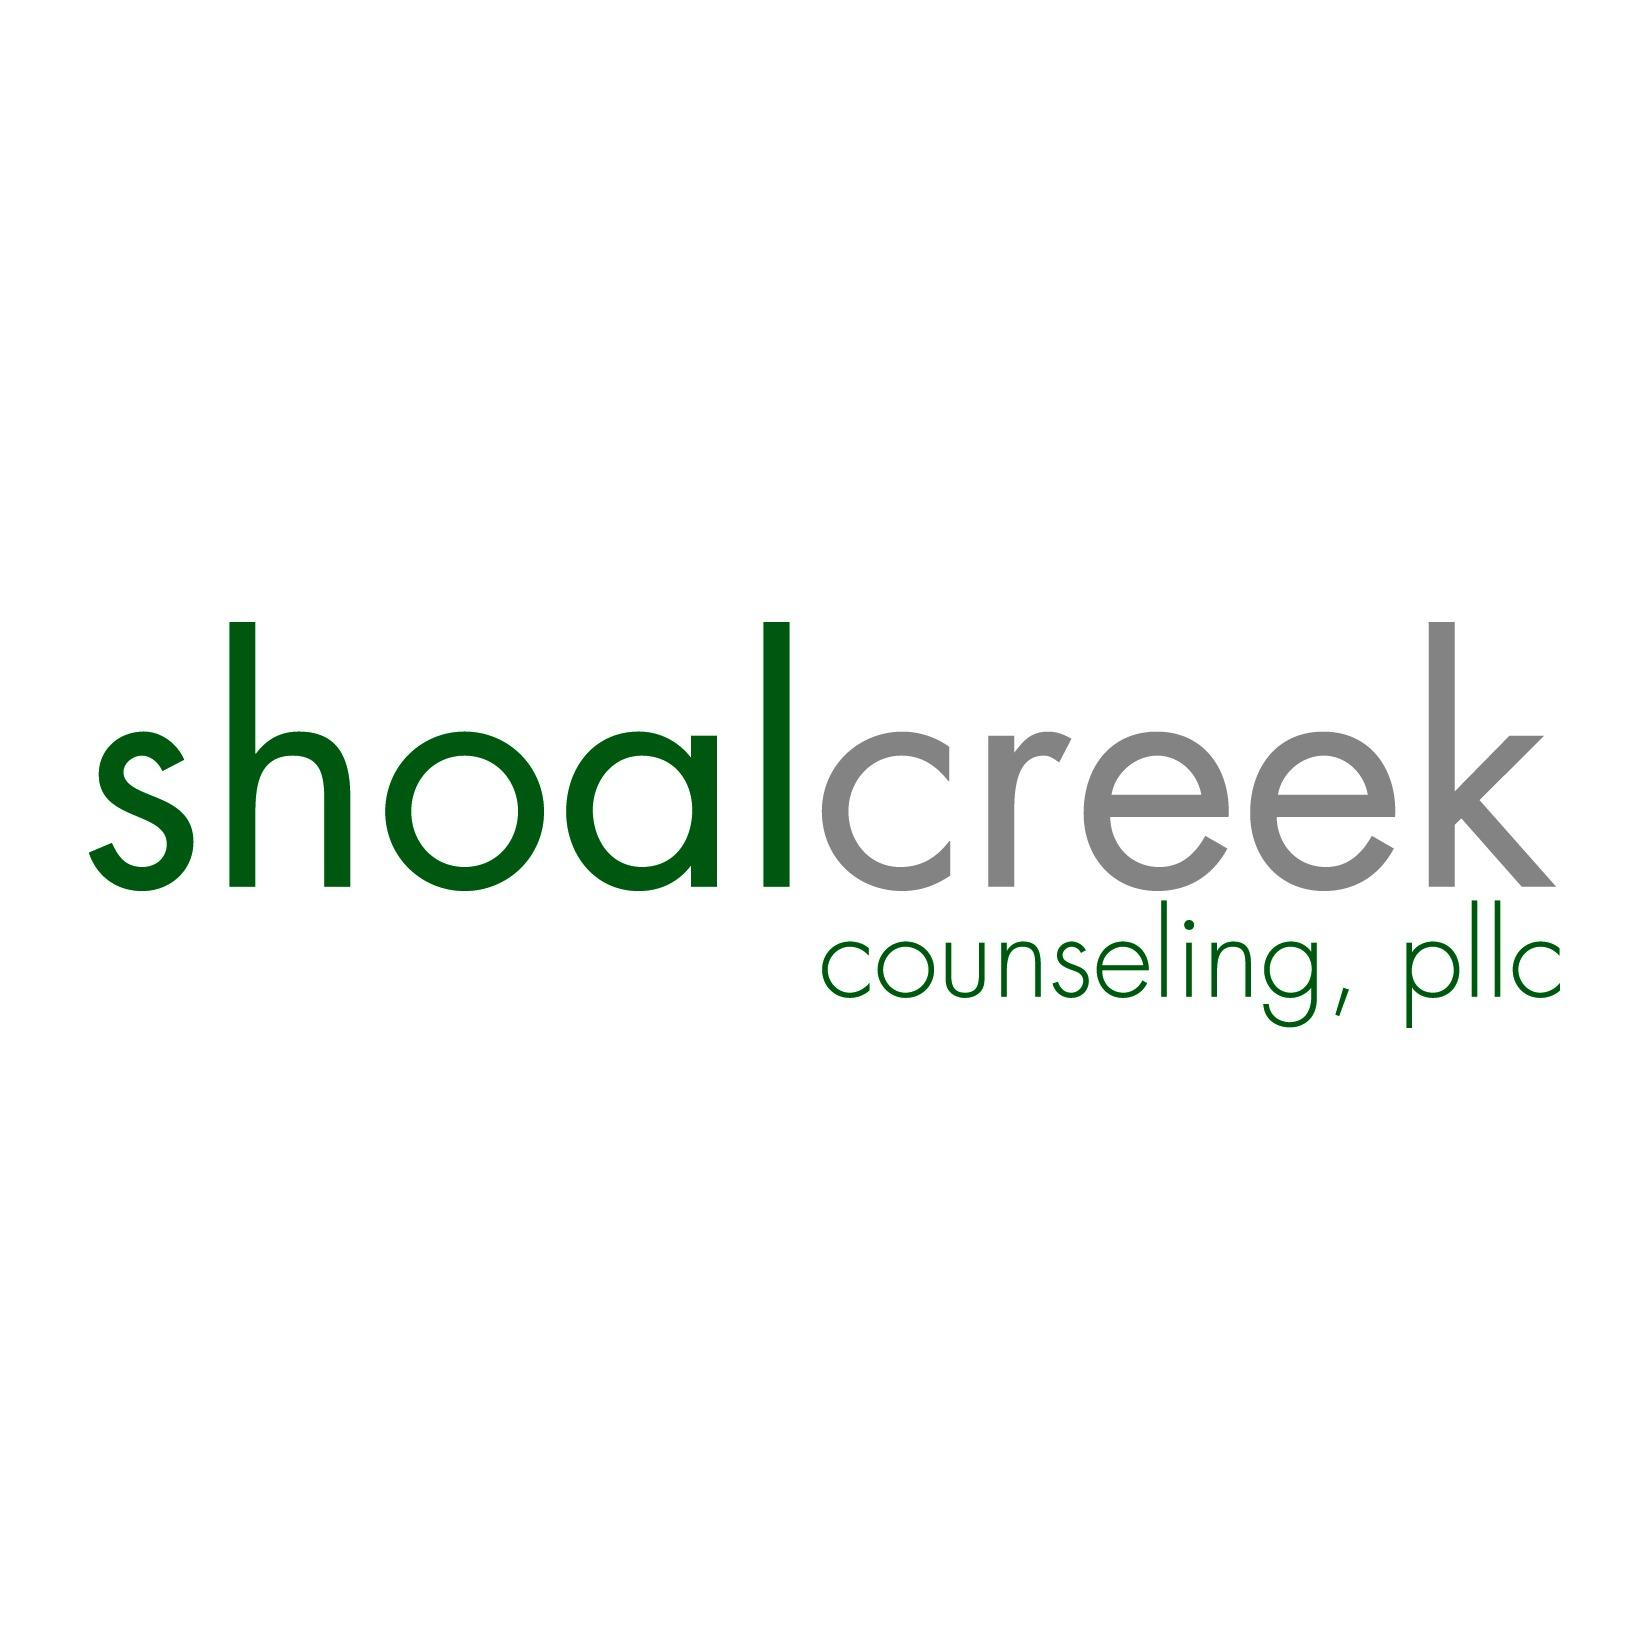 Shoal Creek Counseling, PLLC